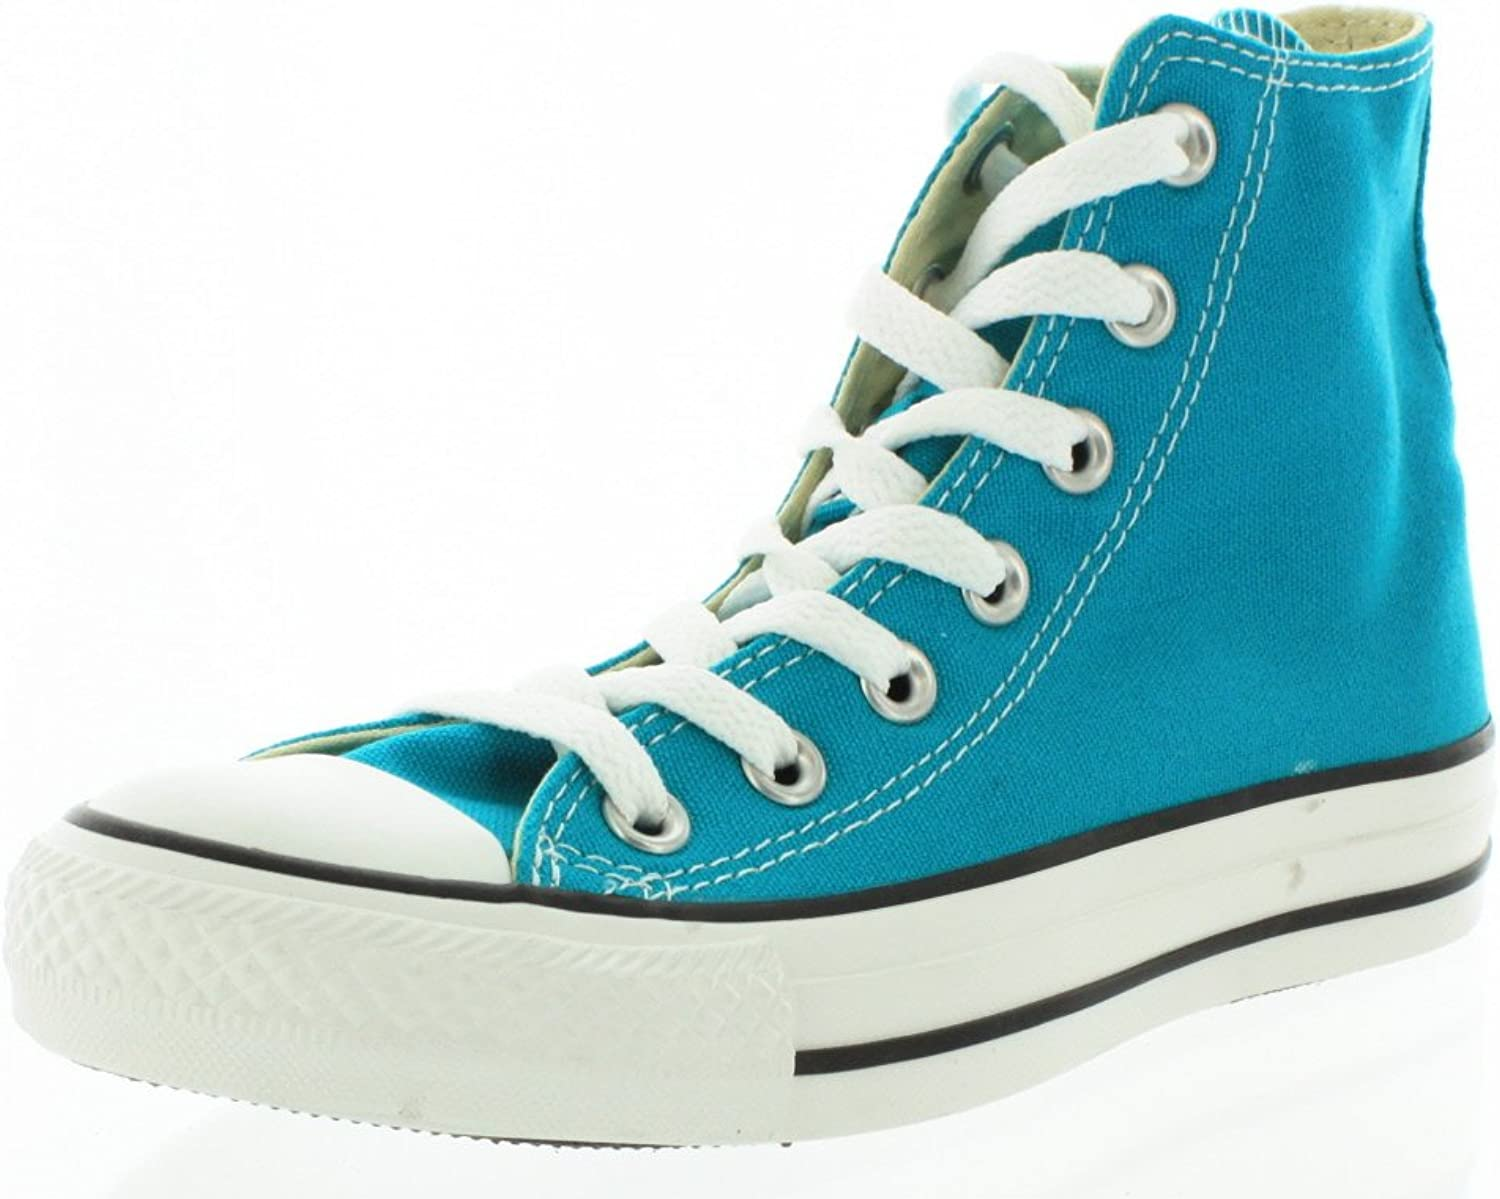 Converse Chuck Taylor All Star Sneaker, Hi Top Unisex Style   144801f